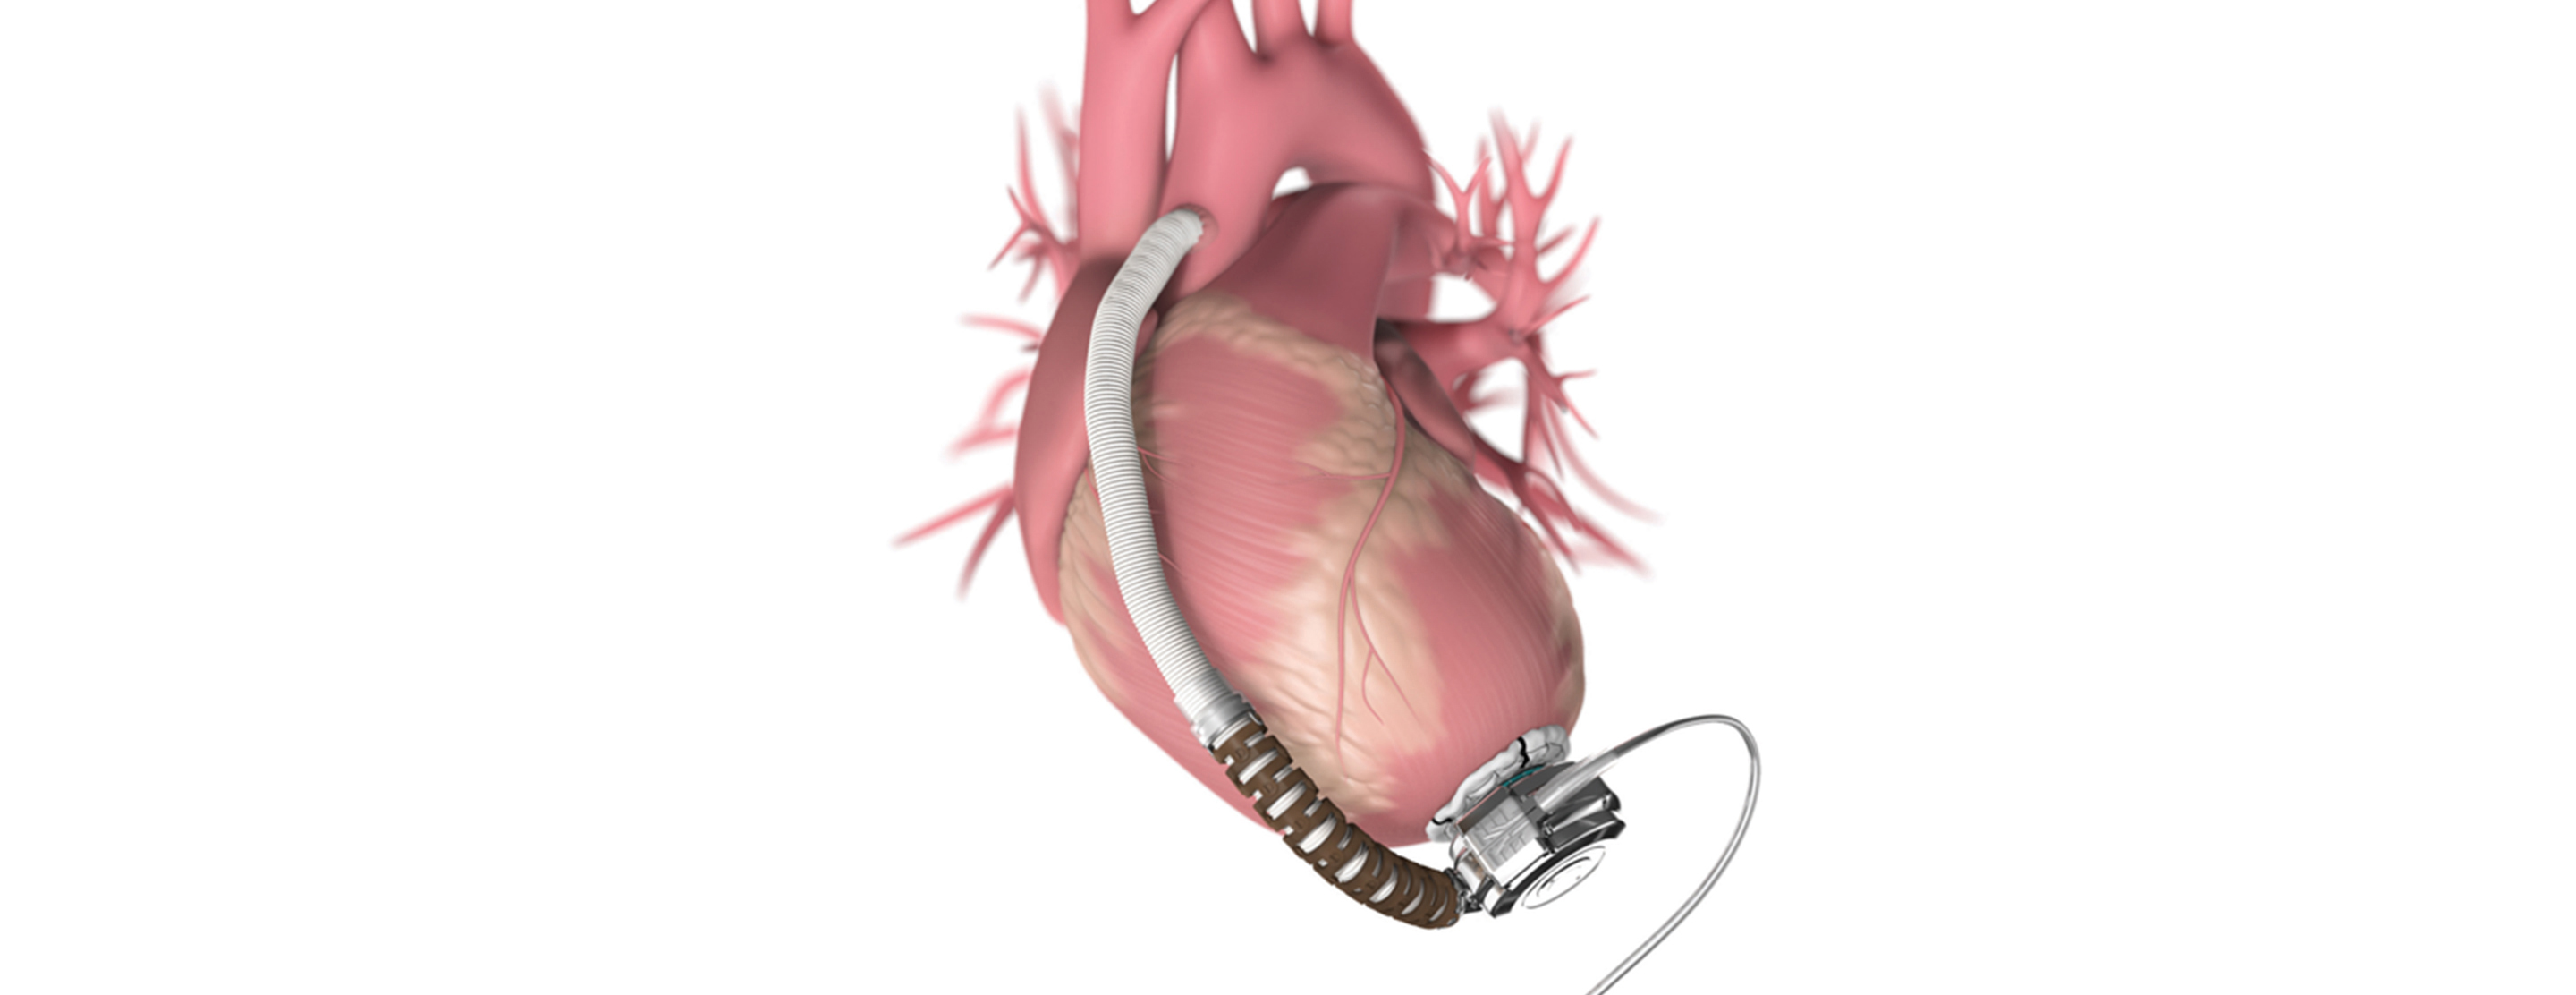 Image result for Ventricular Assist Device